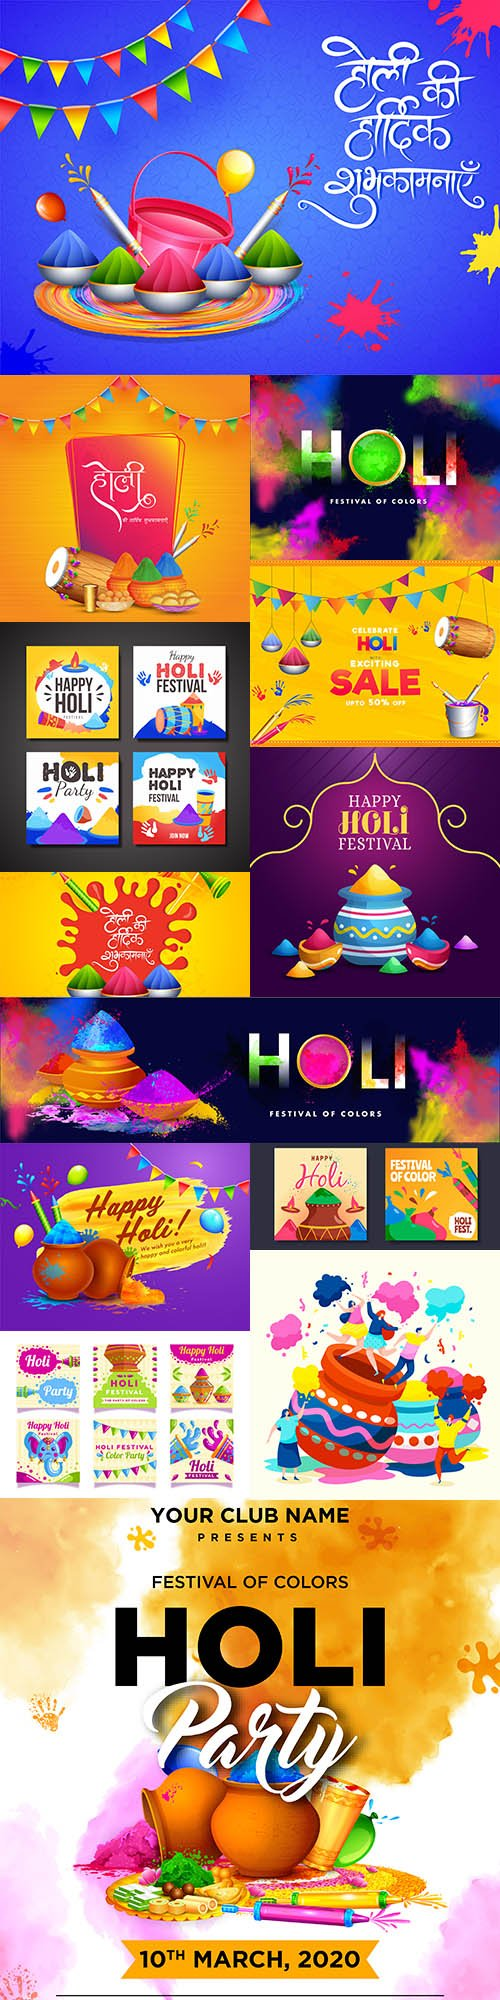 Happy Holi festival bright paints design poster